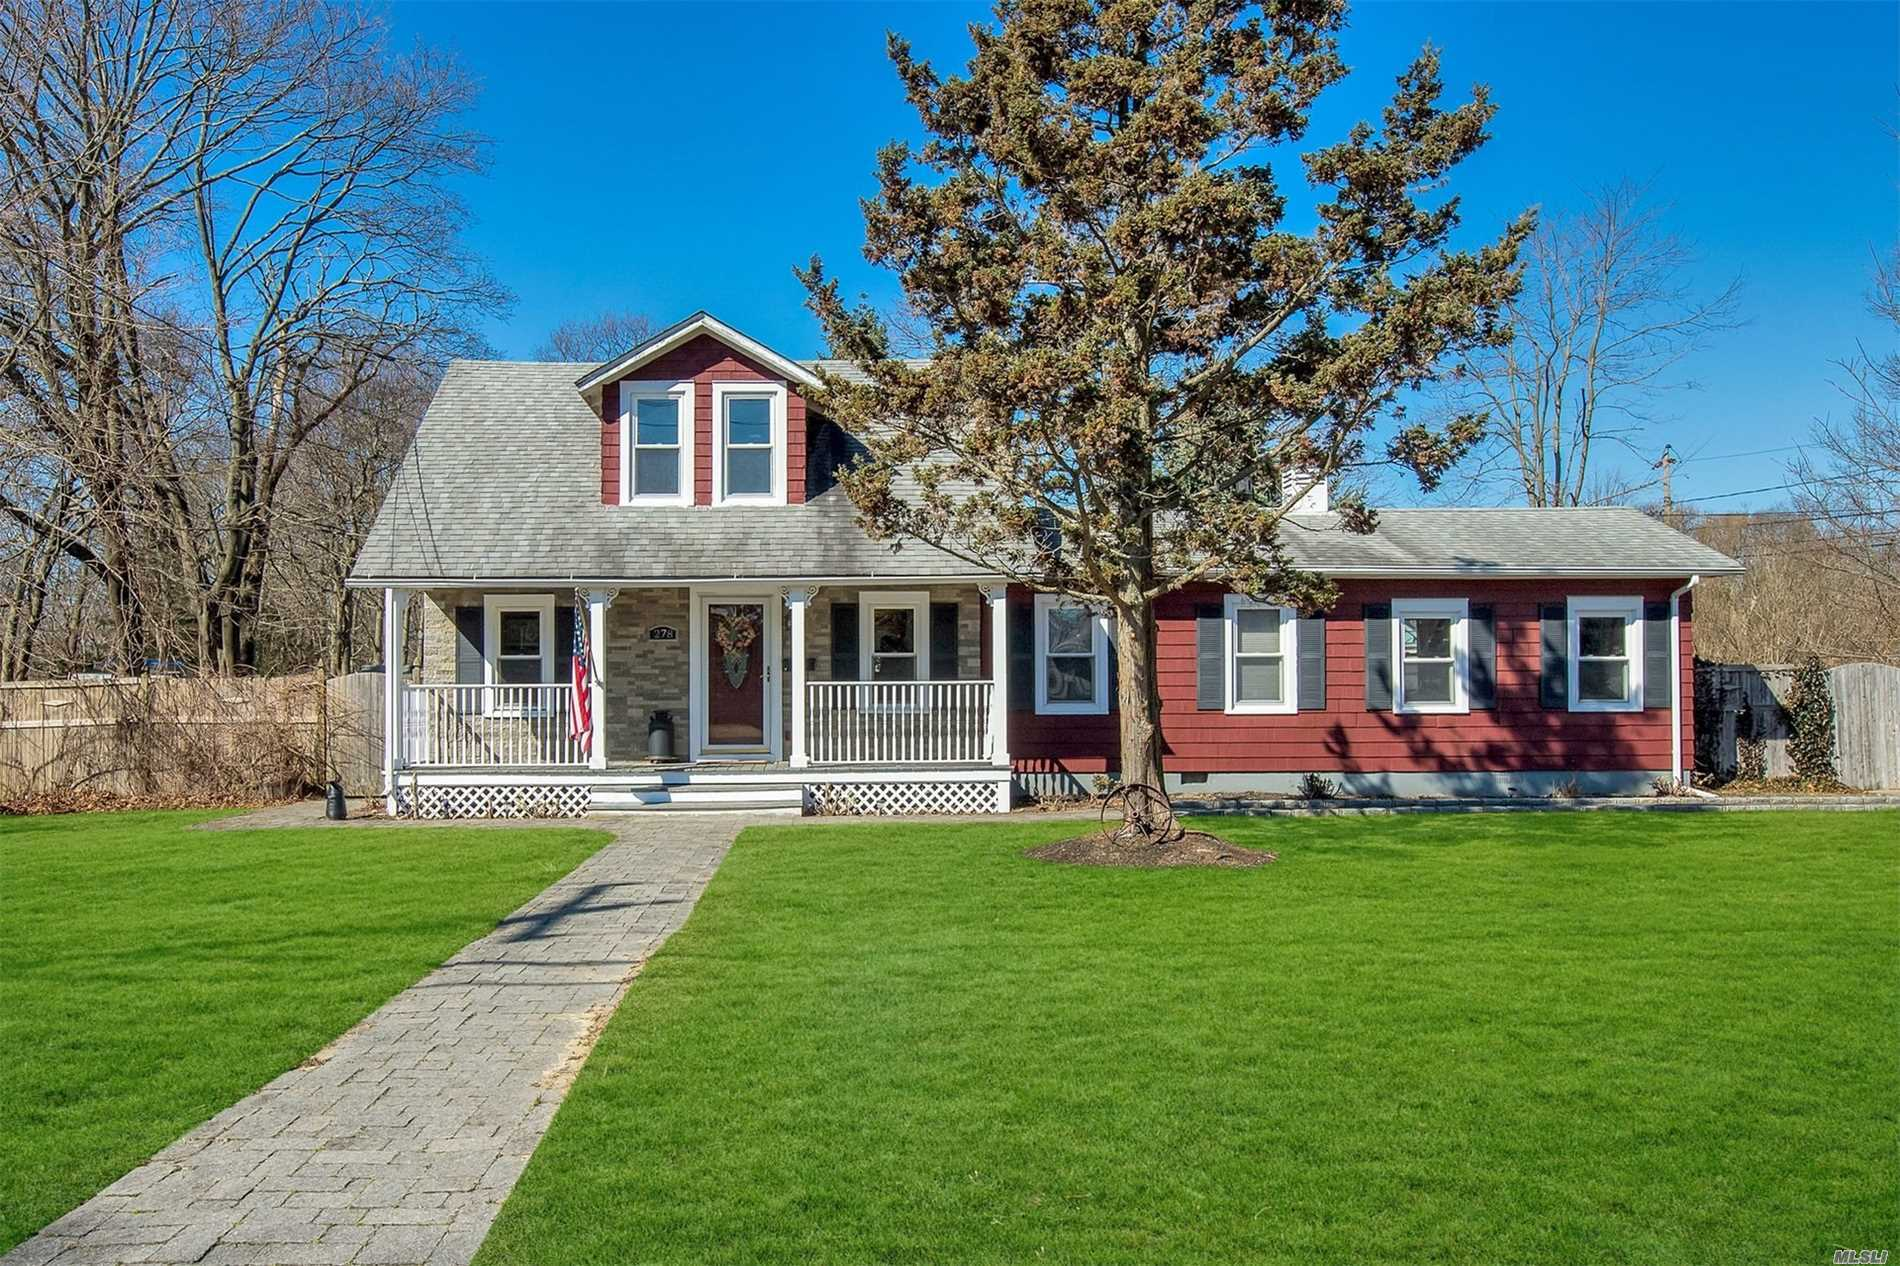 Fully Expanded Cape offers Updated Kitchen with Stainless Steel Appliances, Hardwood Floors, Master Suite upstairs with Full Bath. Attention all car guys - Detached 2 Car Garage with huge walk up Loft! All on Huge Lot, Islip Schools. Won't Last!